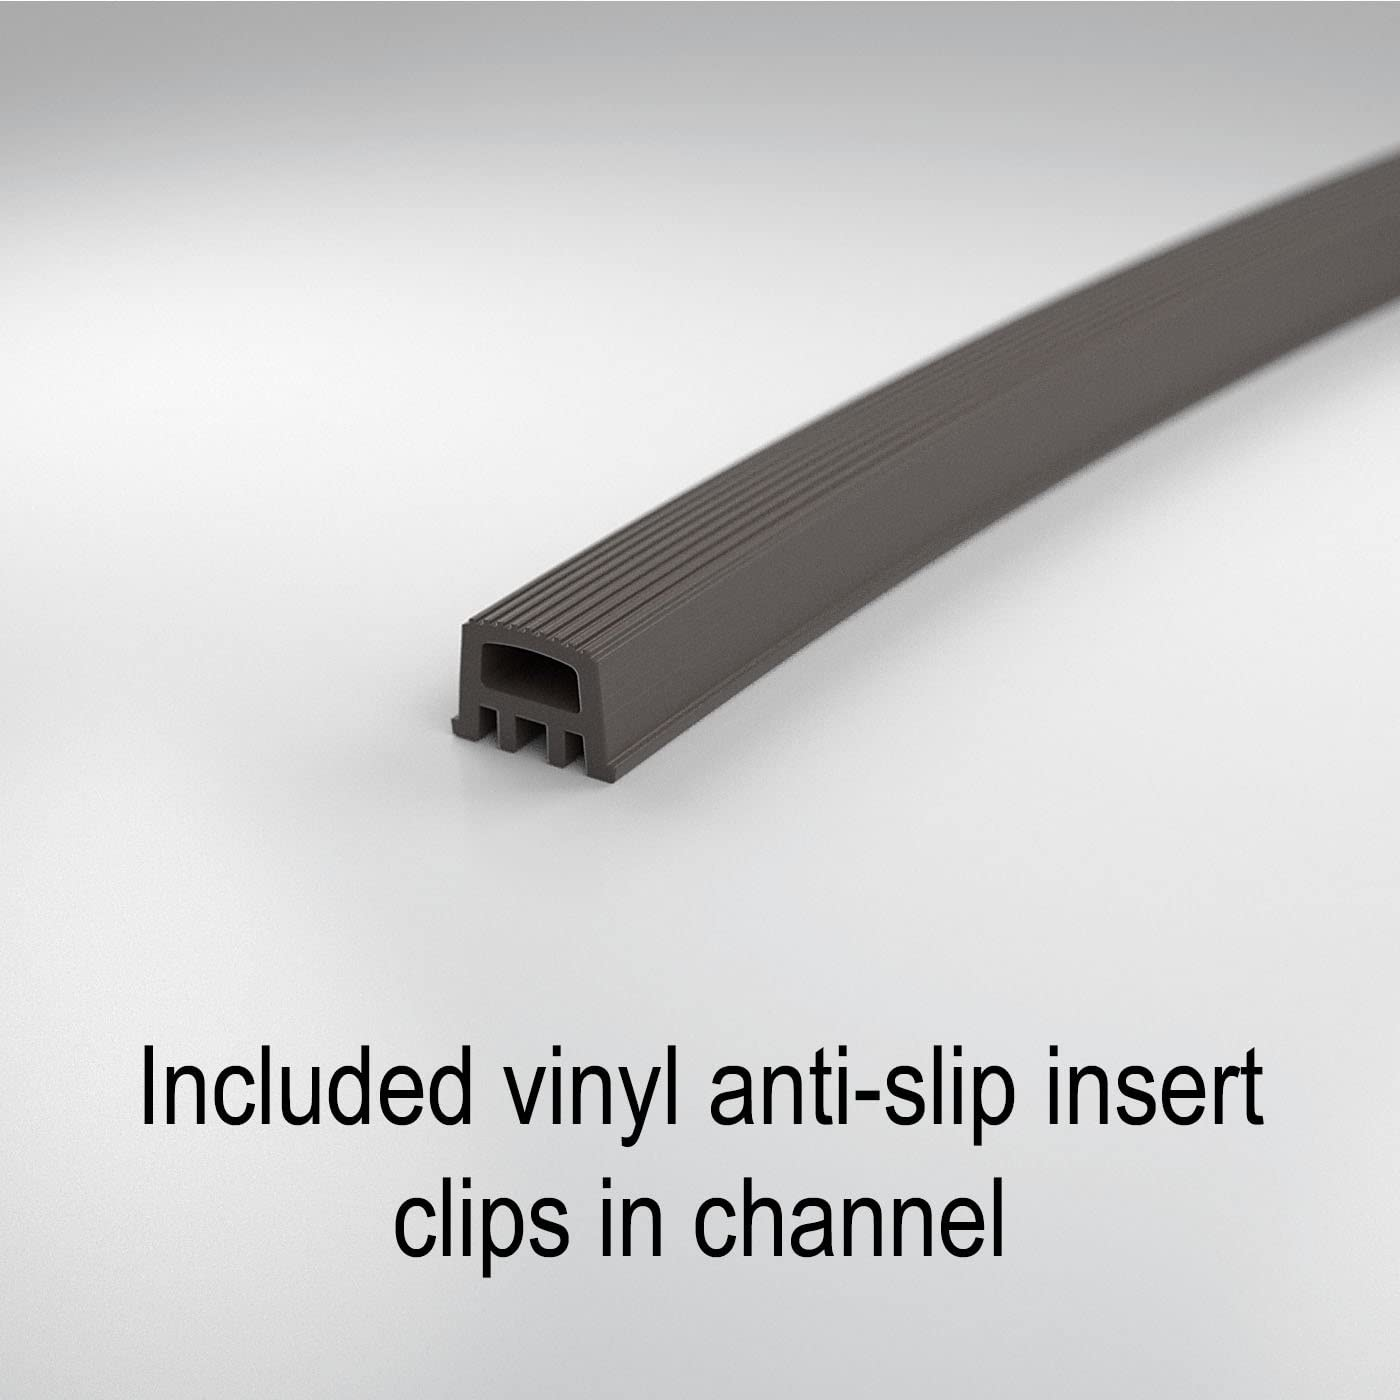 Handrail Tubing with Anti-Slip Insert 1.6 Round for Promenaid Handrail System Only Champagne Silver Anodized Aluminum 8 ft